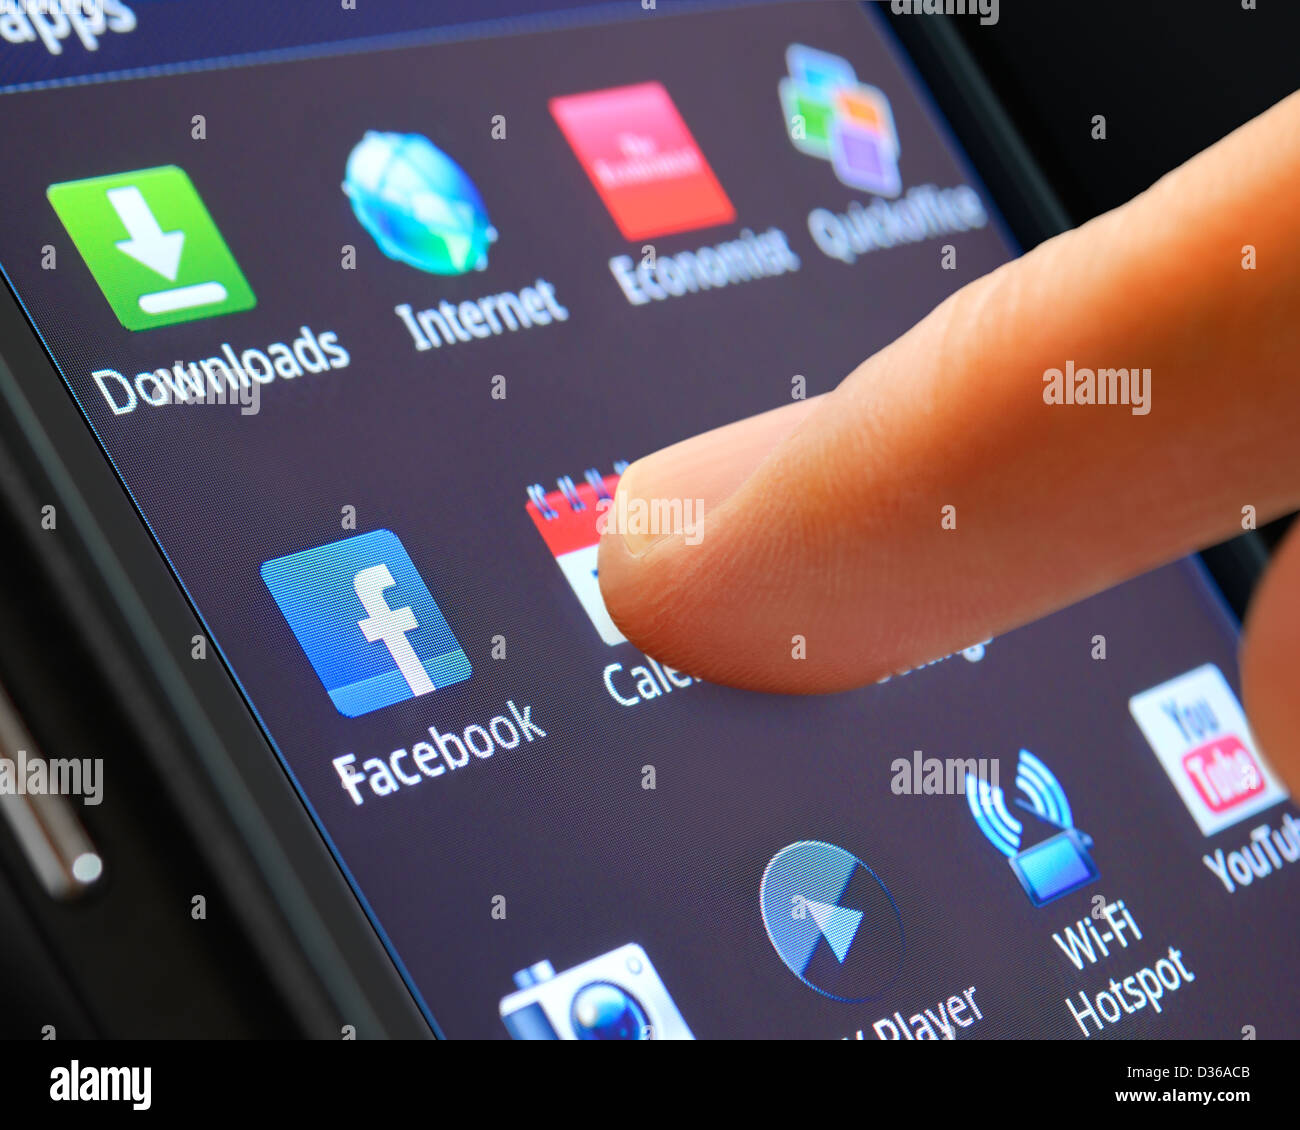 Smartphone App Being Selected on a Touchscreen, Close Up. - Stock Image